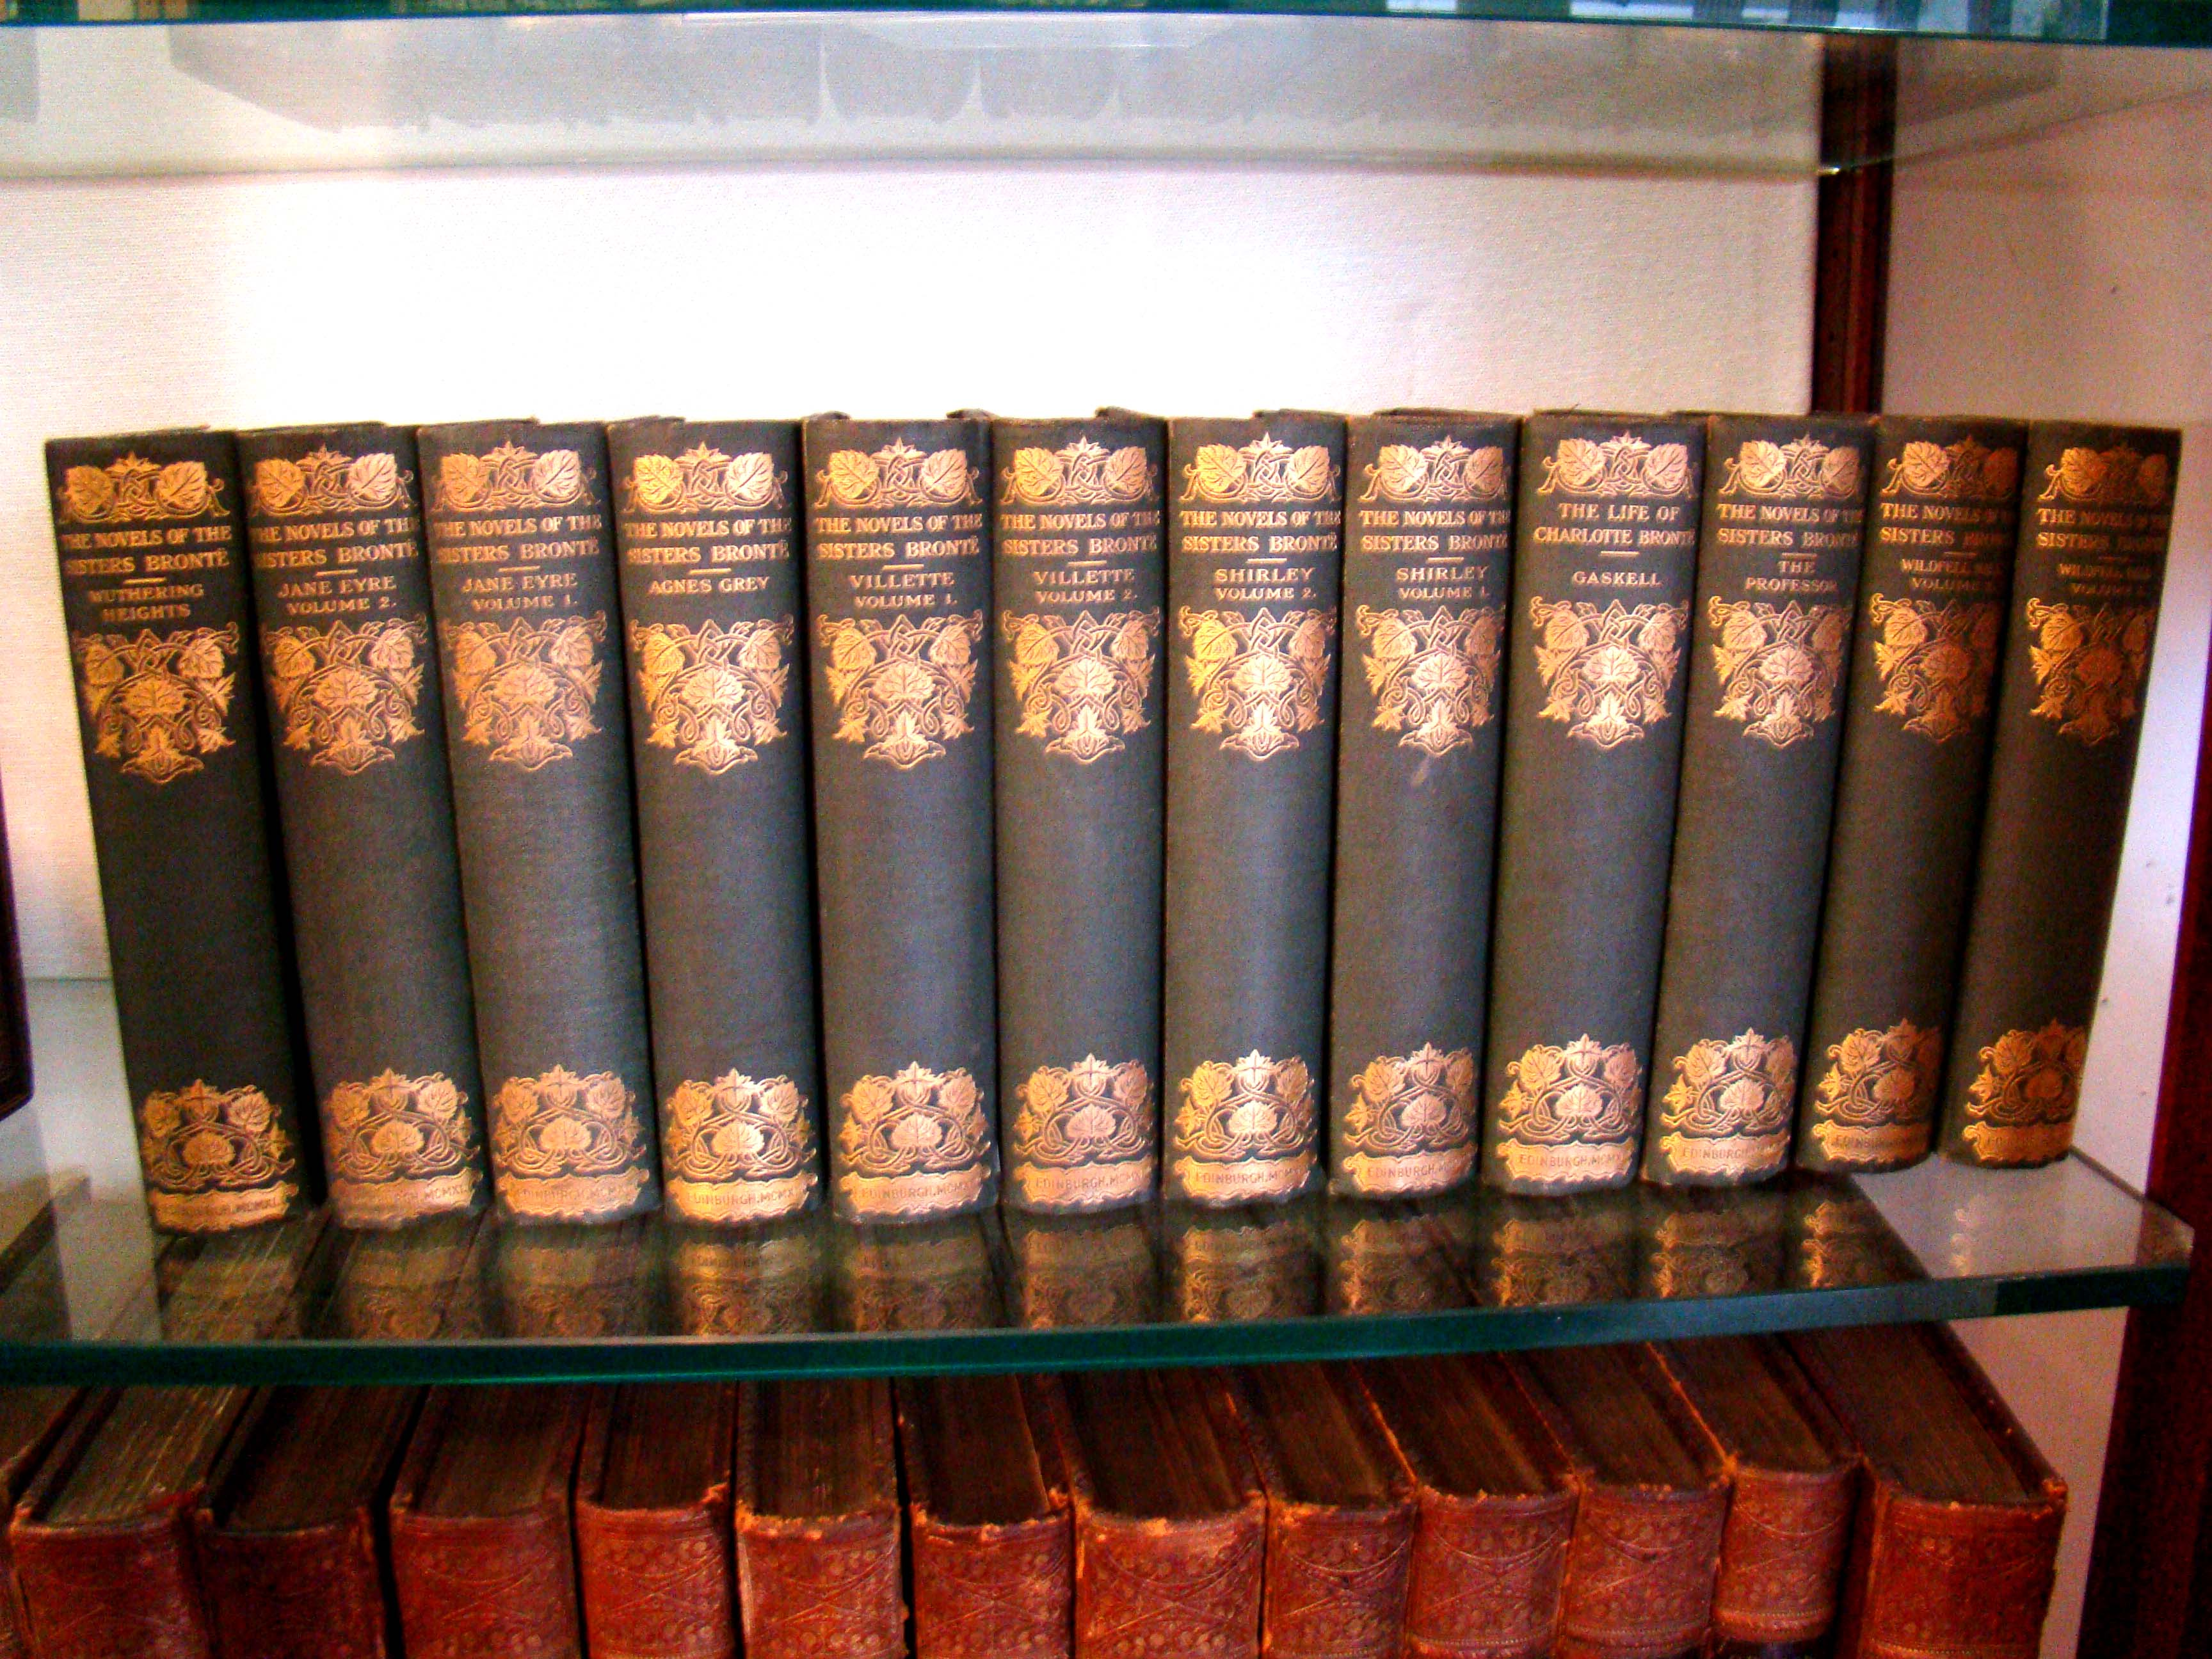 click to view detailed description of A fine and complete 12 volume set of 'The Novels of the Bronte Sisters,' Thornton Edition, published by John Grant of Edinburgh in 1911 and edited by Temple Scott